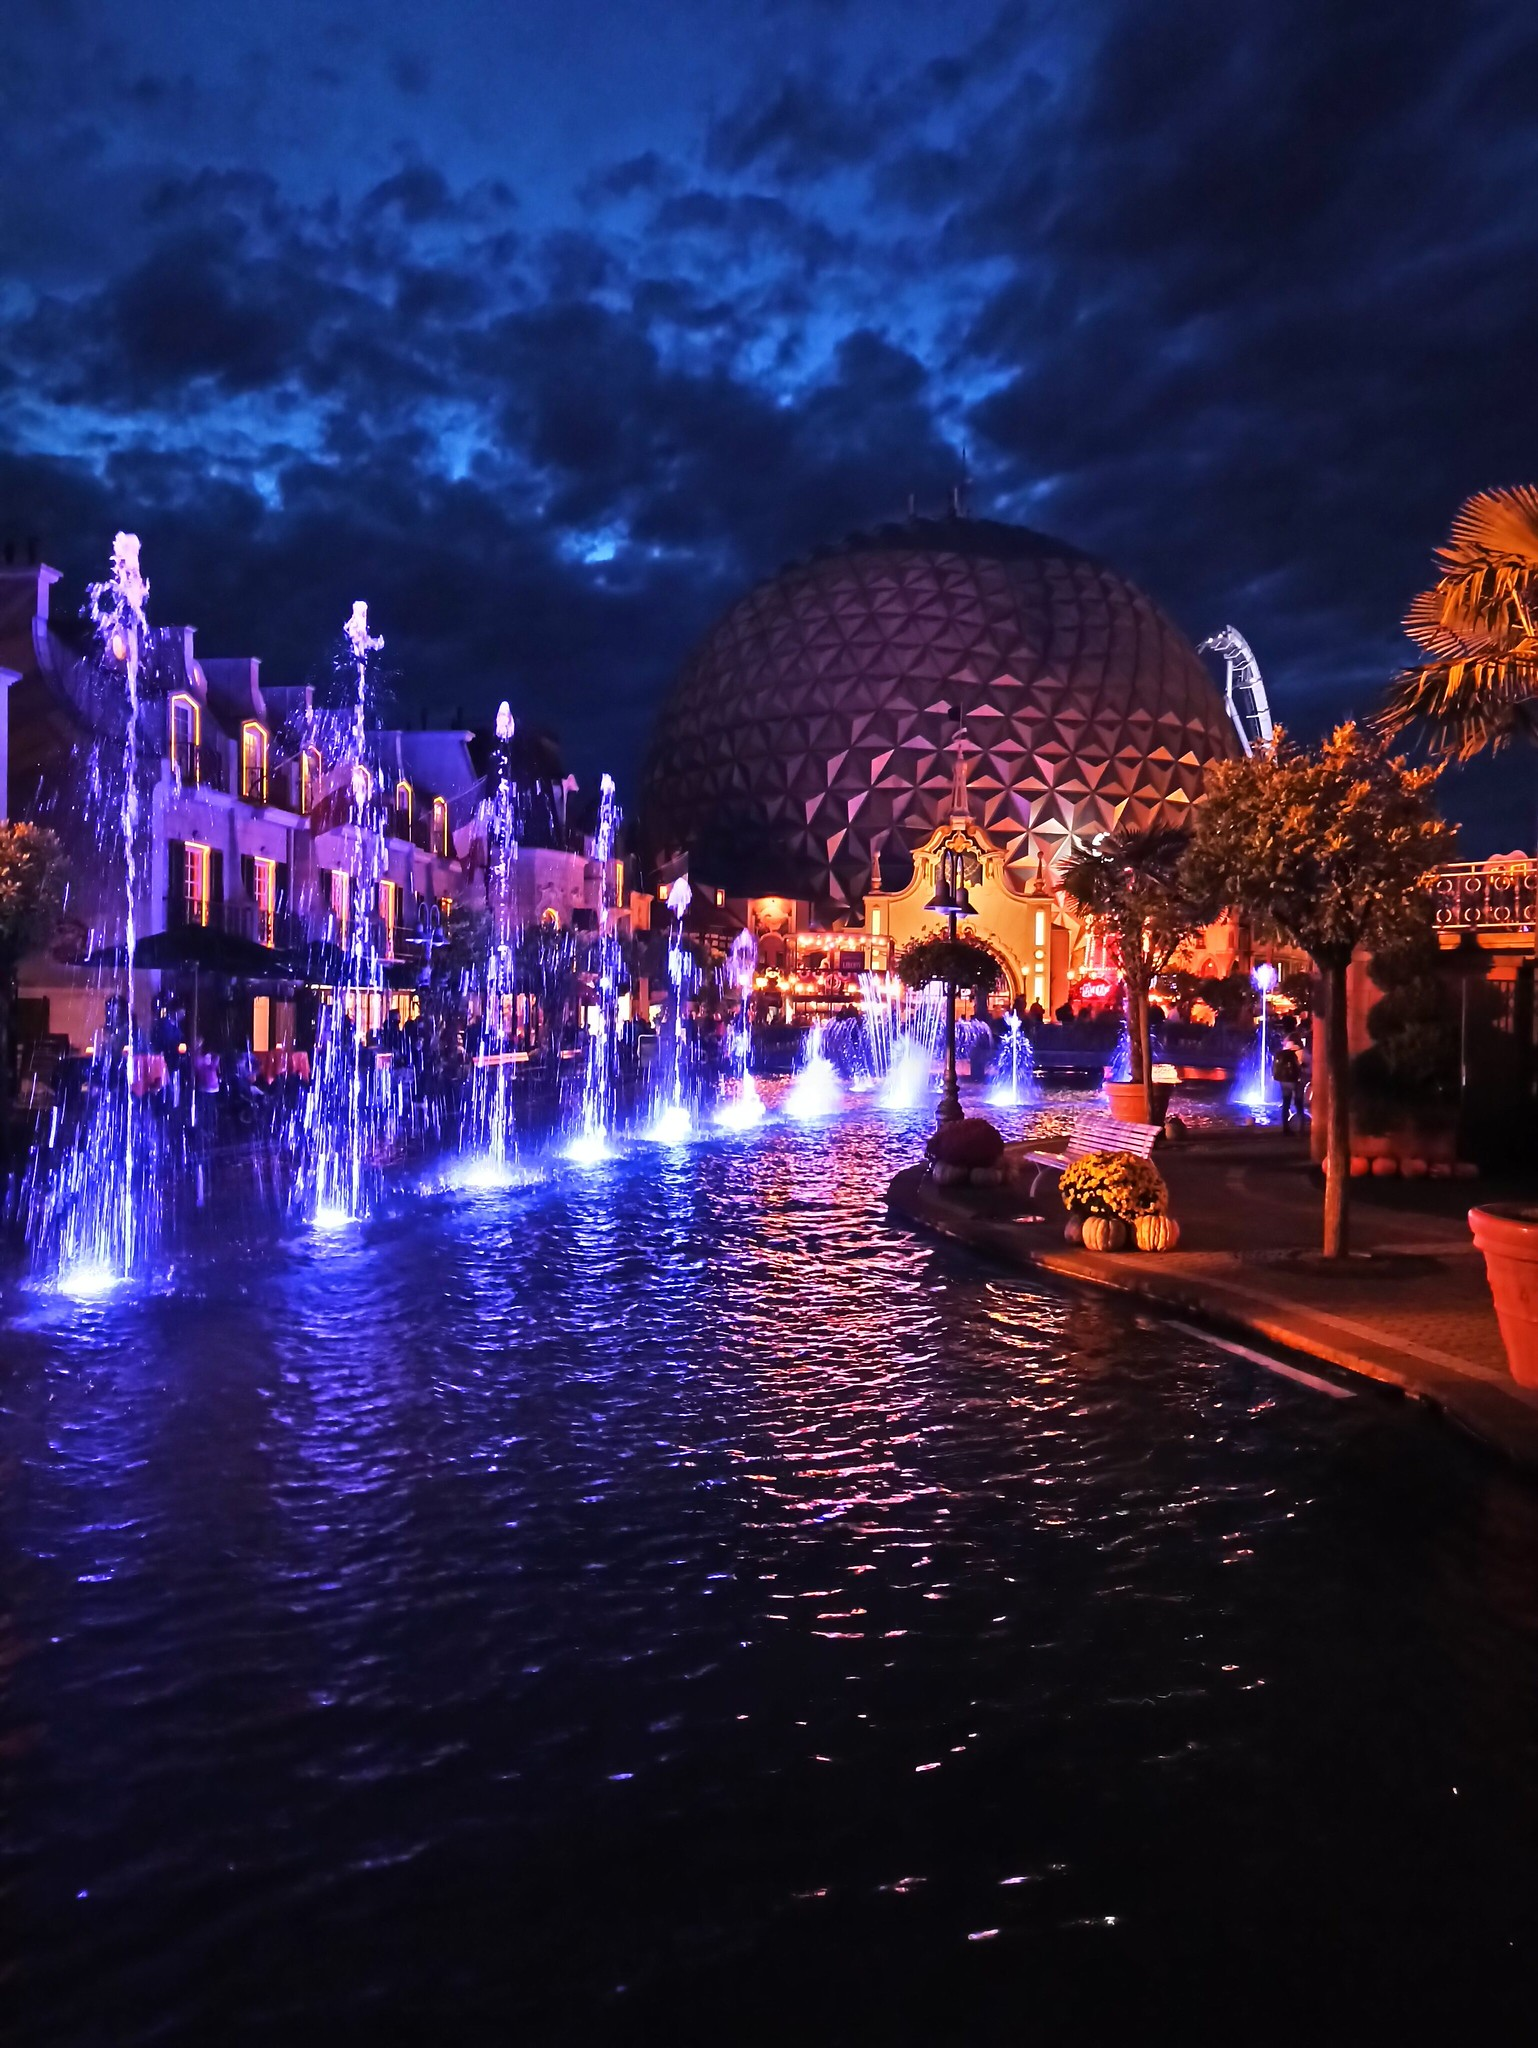 Europa Park at night